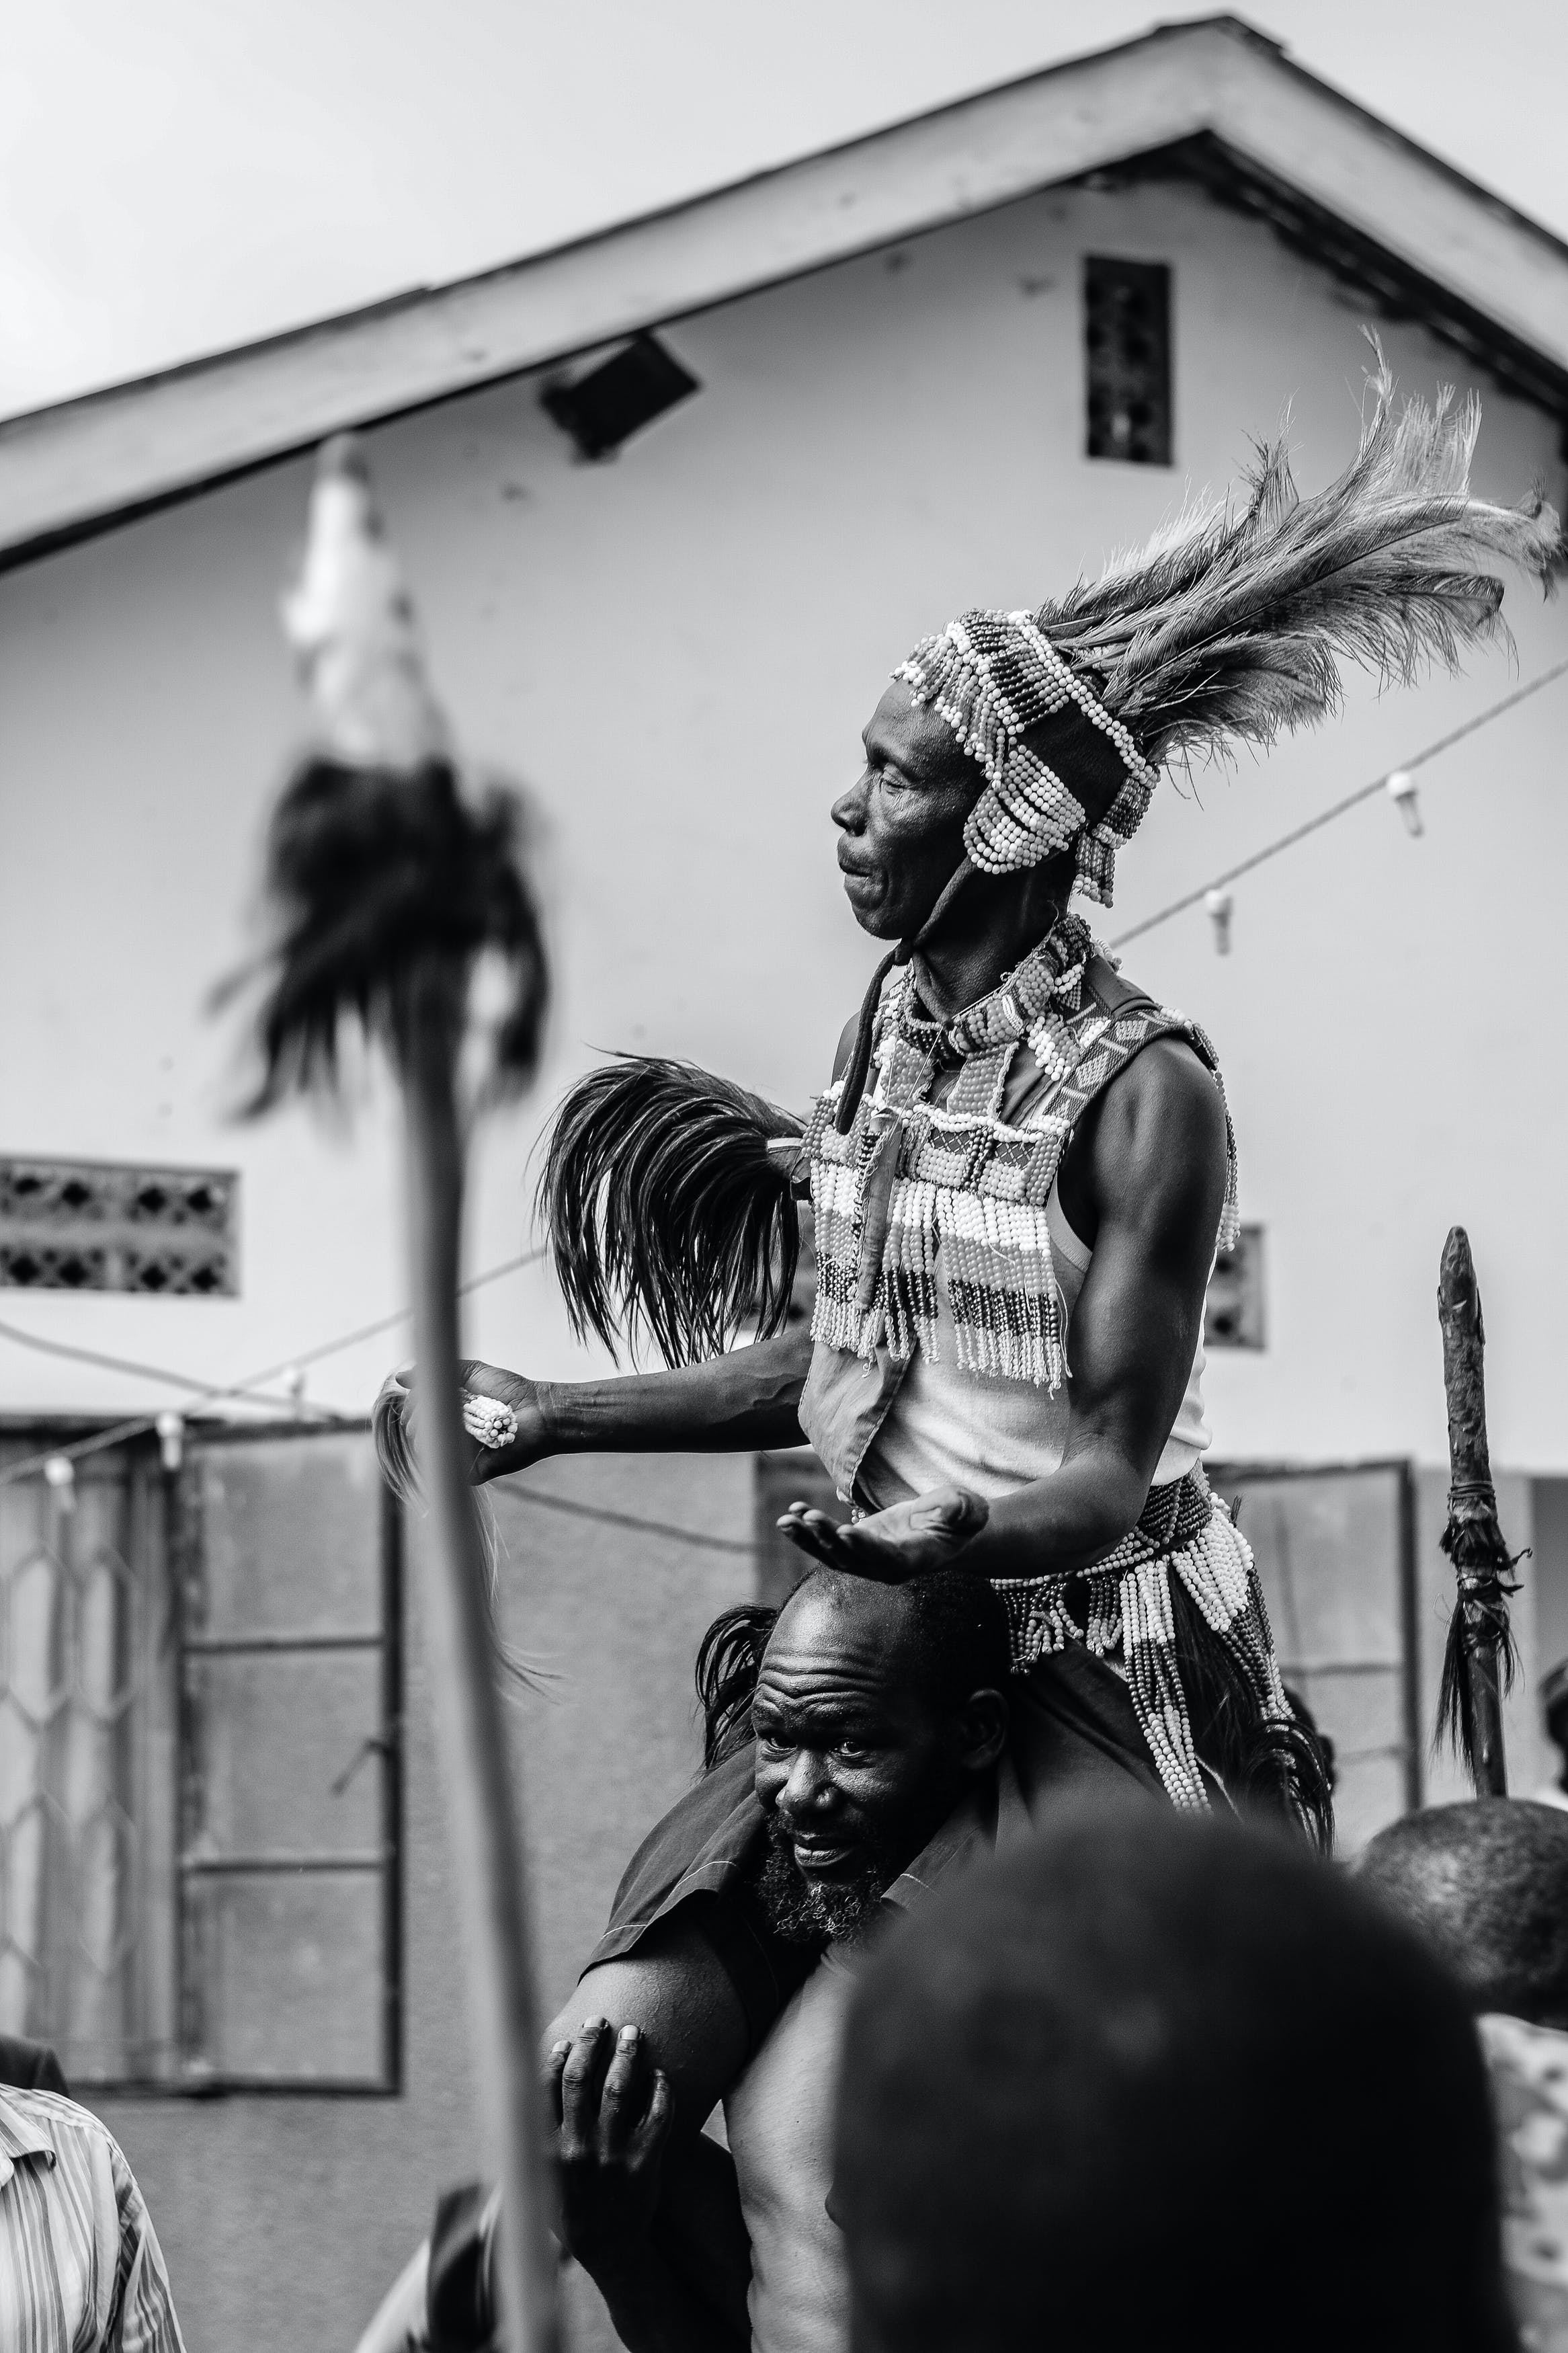 Man Wearing Warbonnet Performing